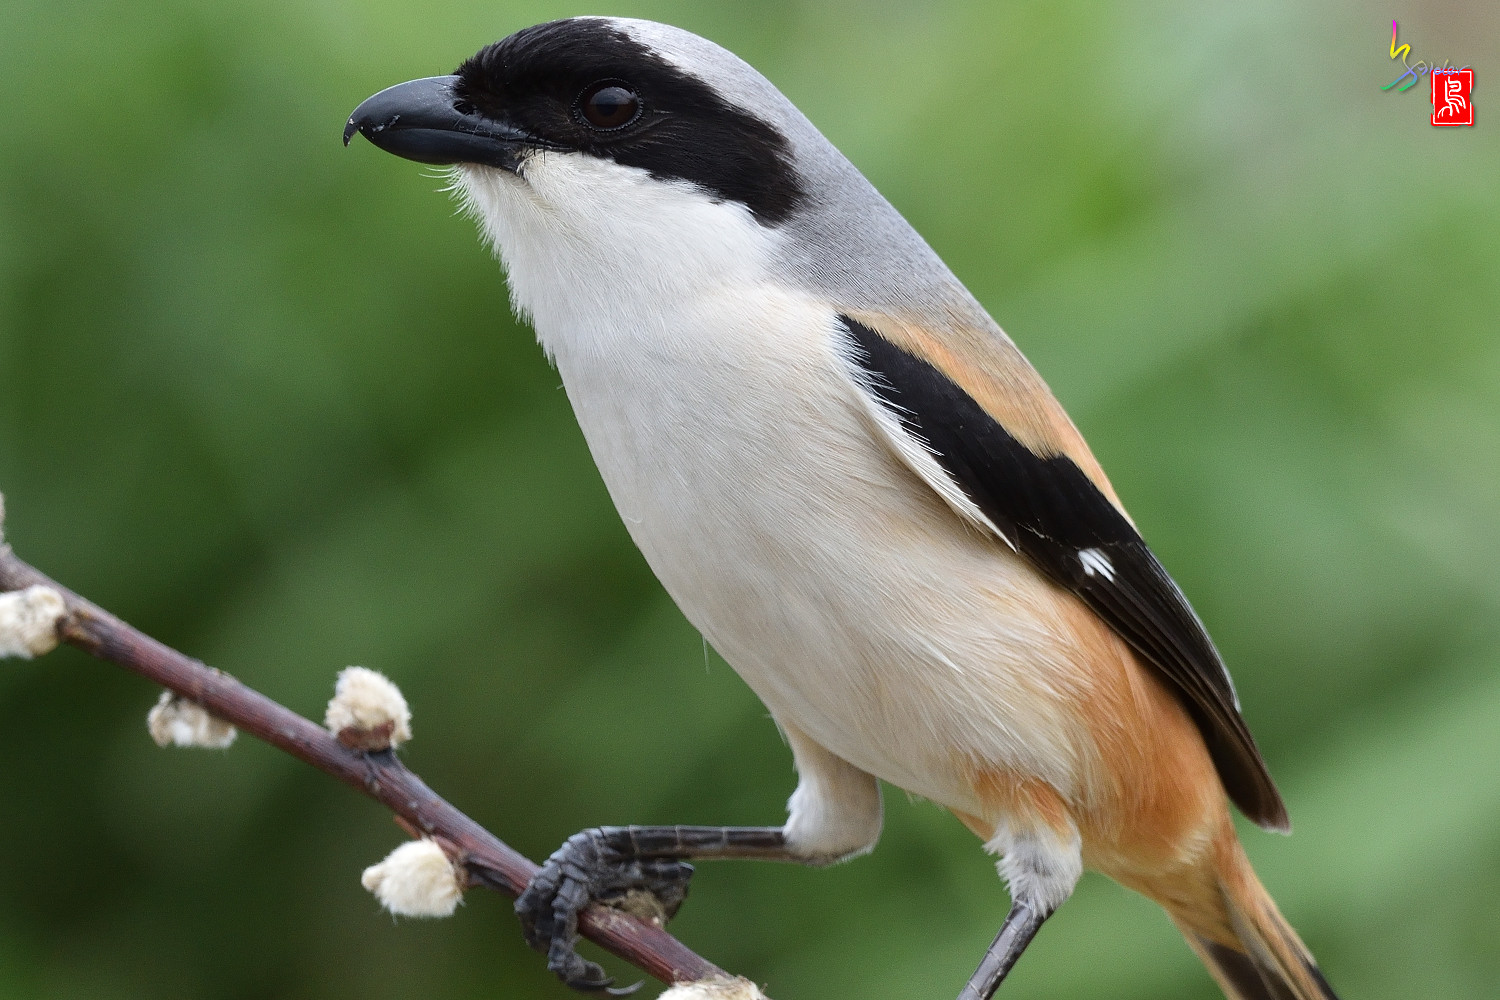 Long-tailed_Shrike_5472